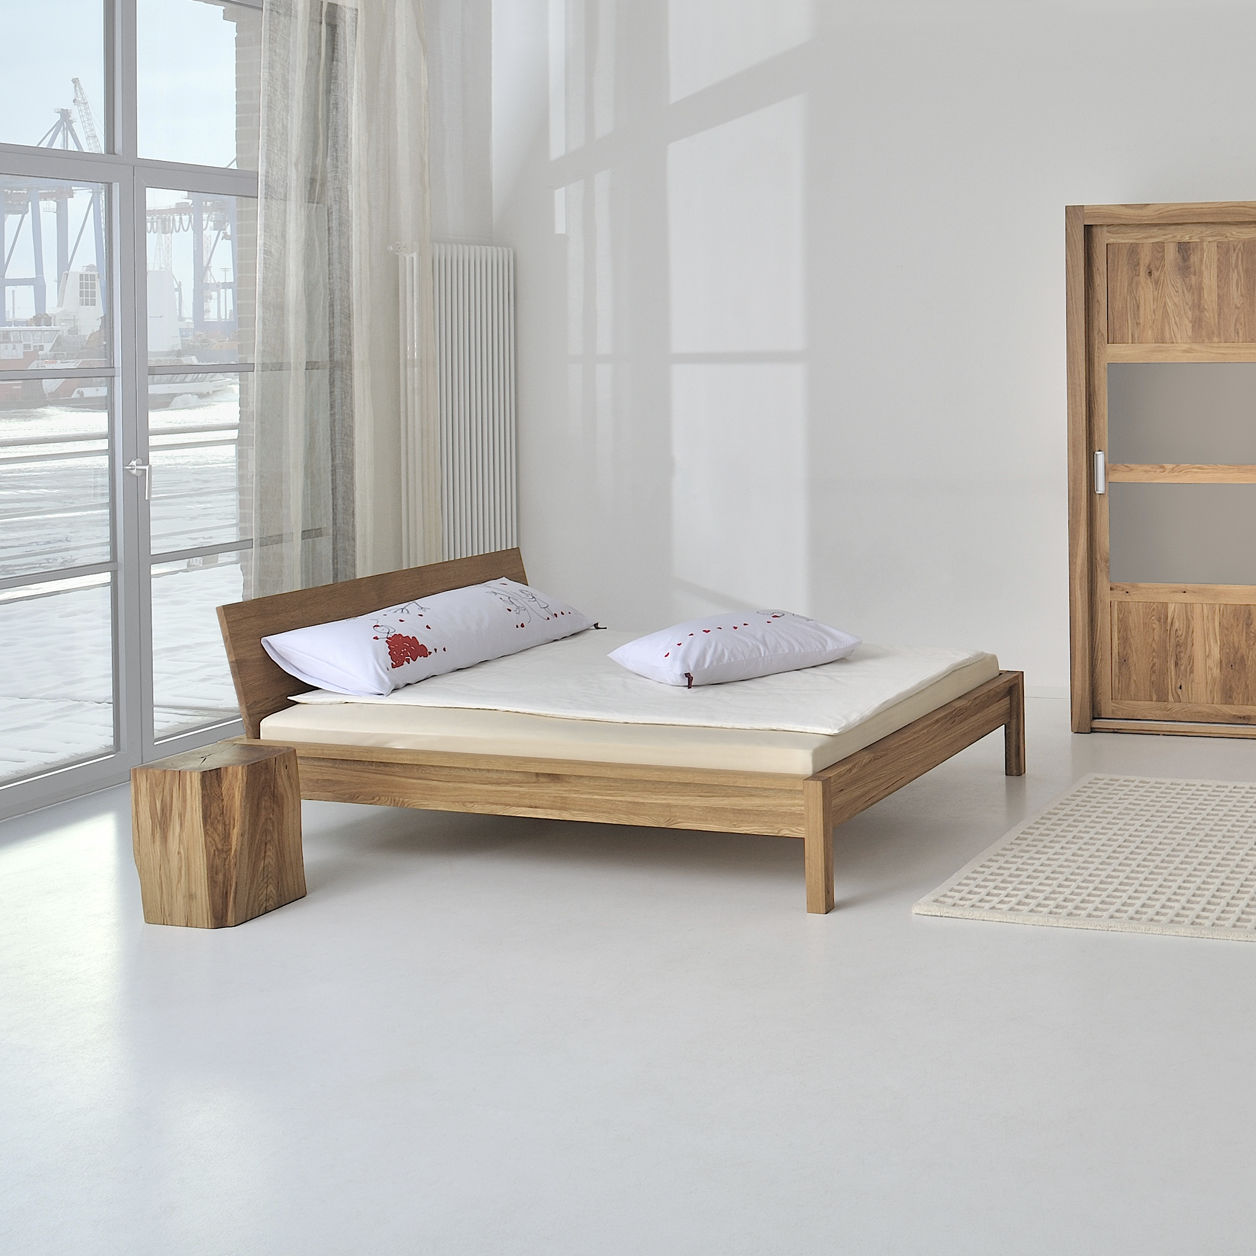 Scandinavian Furniture Bed Double Bed Scandinavian Design With Headboard Custom Cara